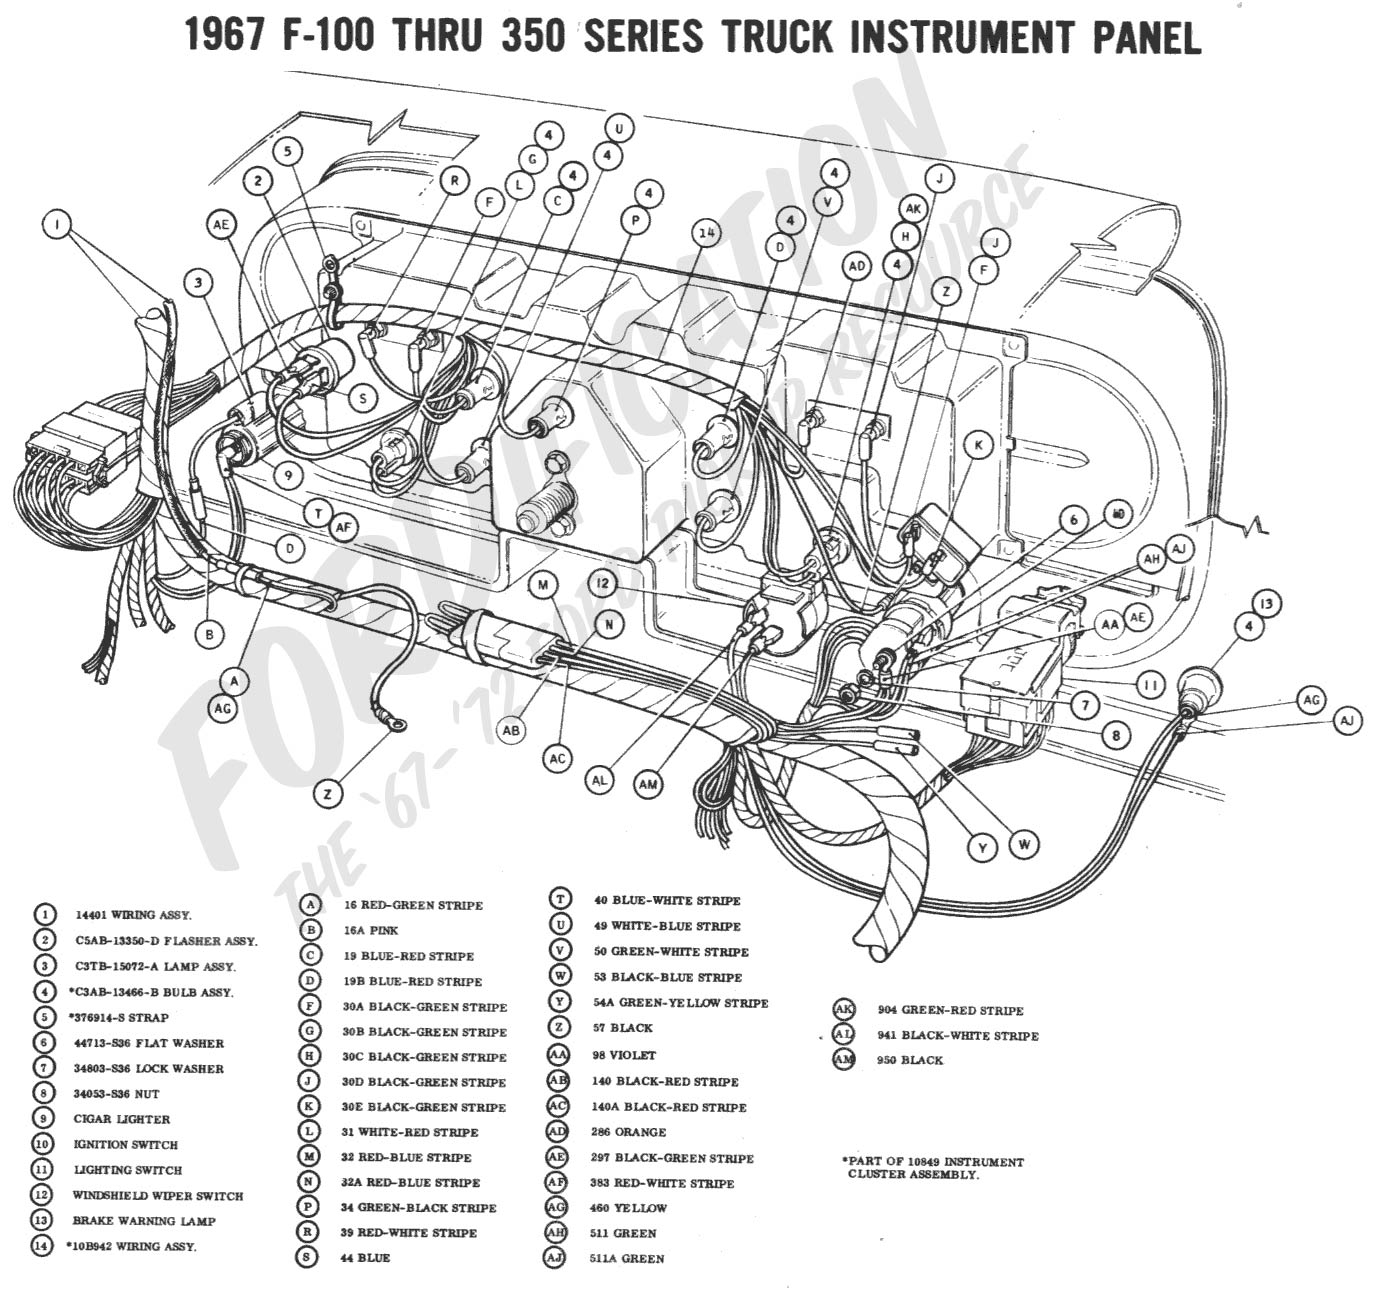 1967 Master Wiring Diagram Pictures To Pin On Pinterest